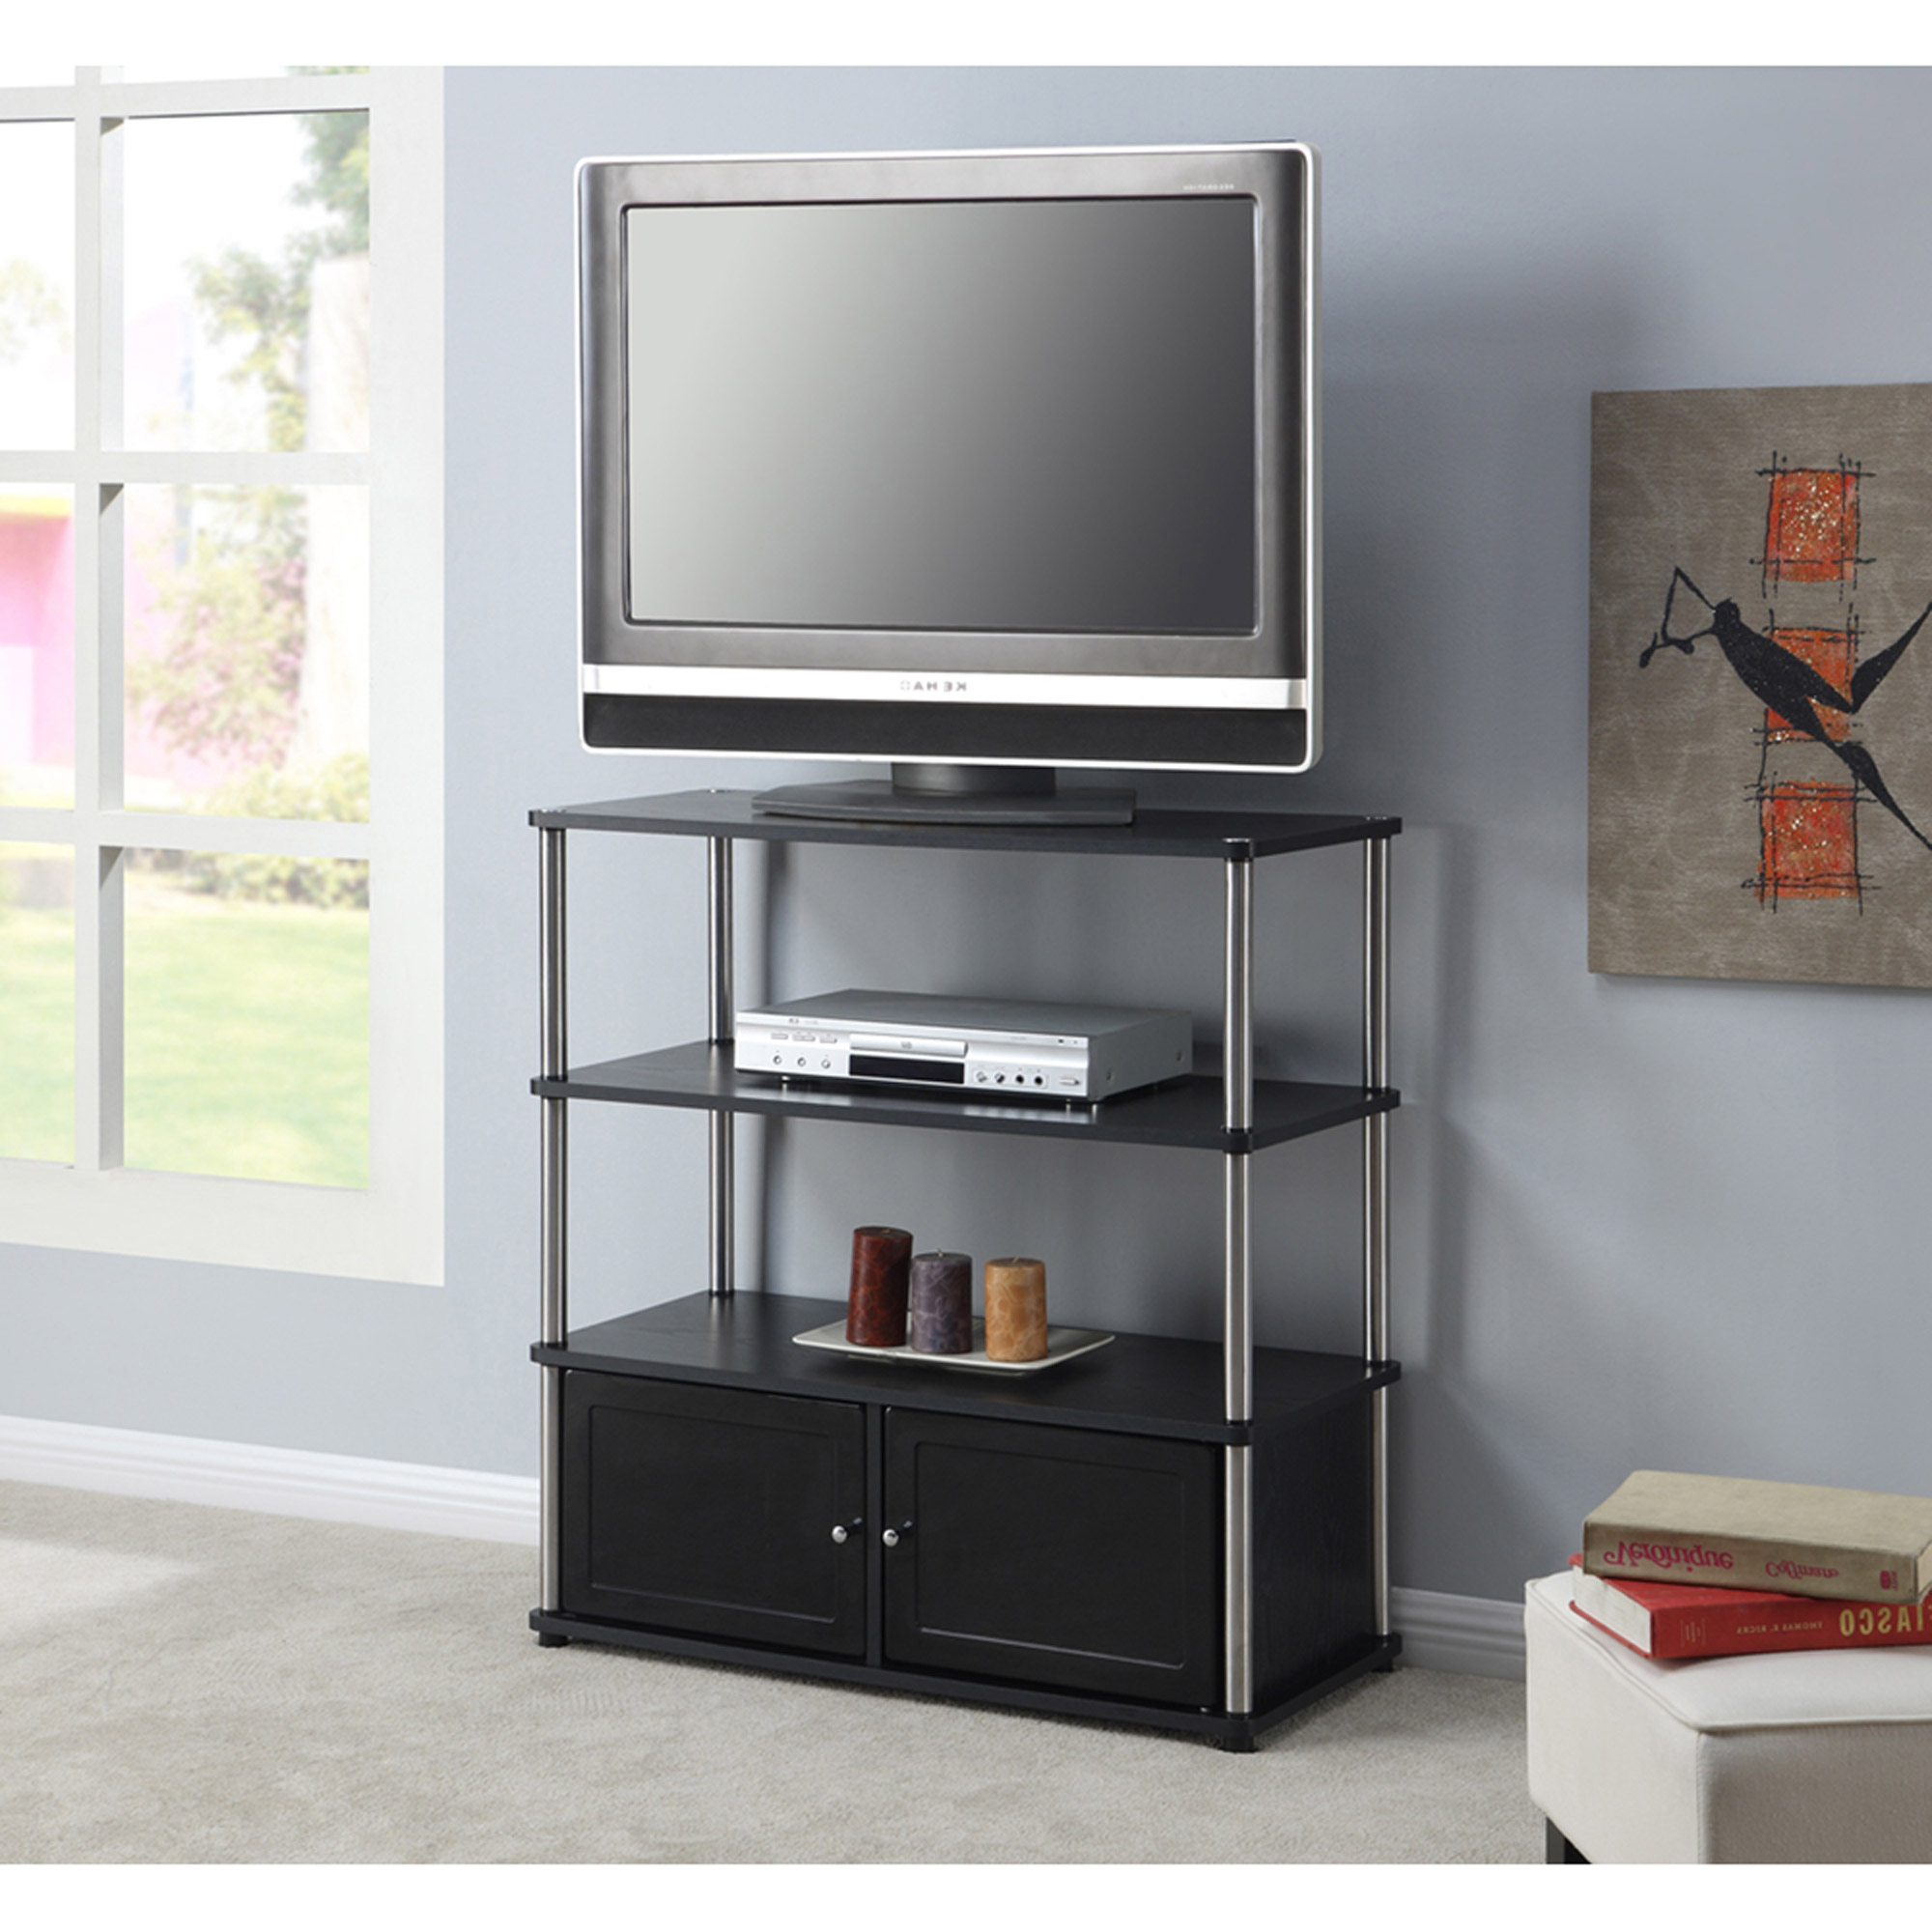 Well Liked Black Tv Stand 55 Inch Cabinet With Doors Kmart Stands Ikea Tall With Regard To Tall Narrow Tv Stands (View 9 of 20)